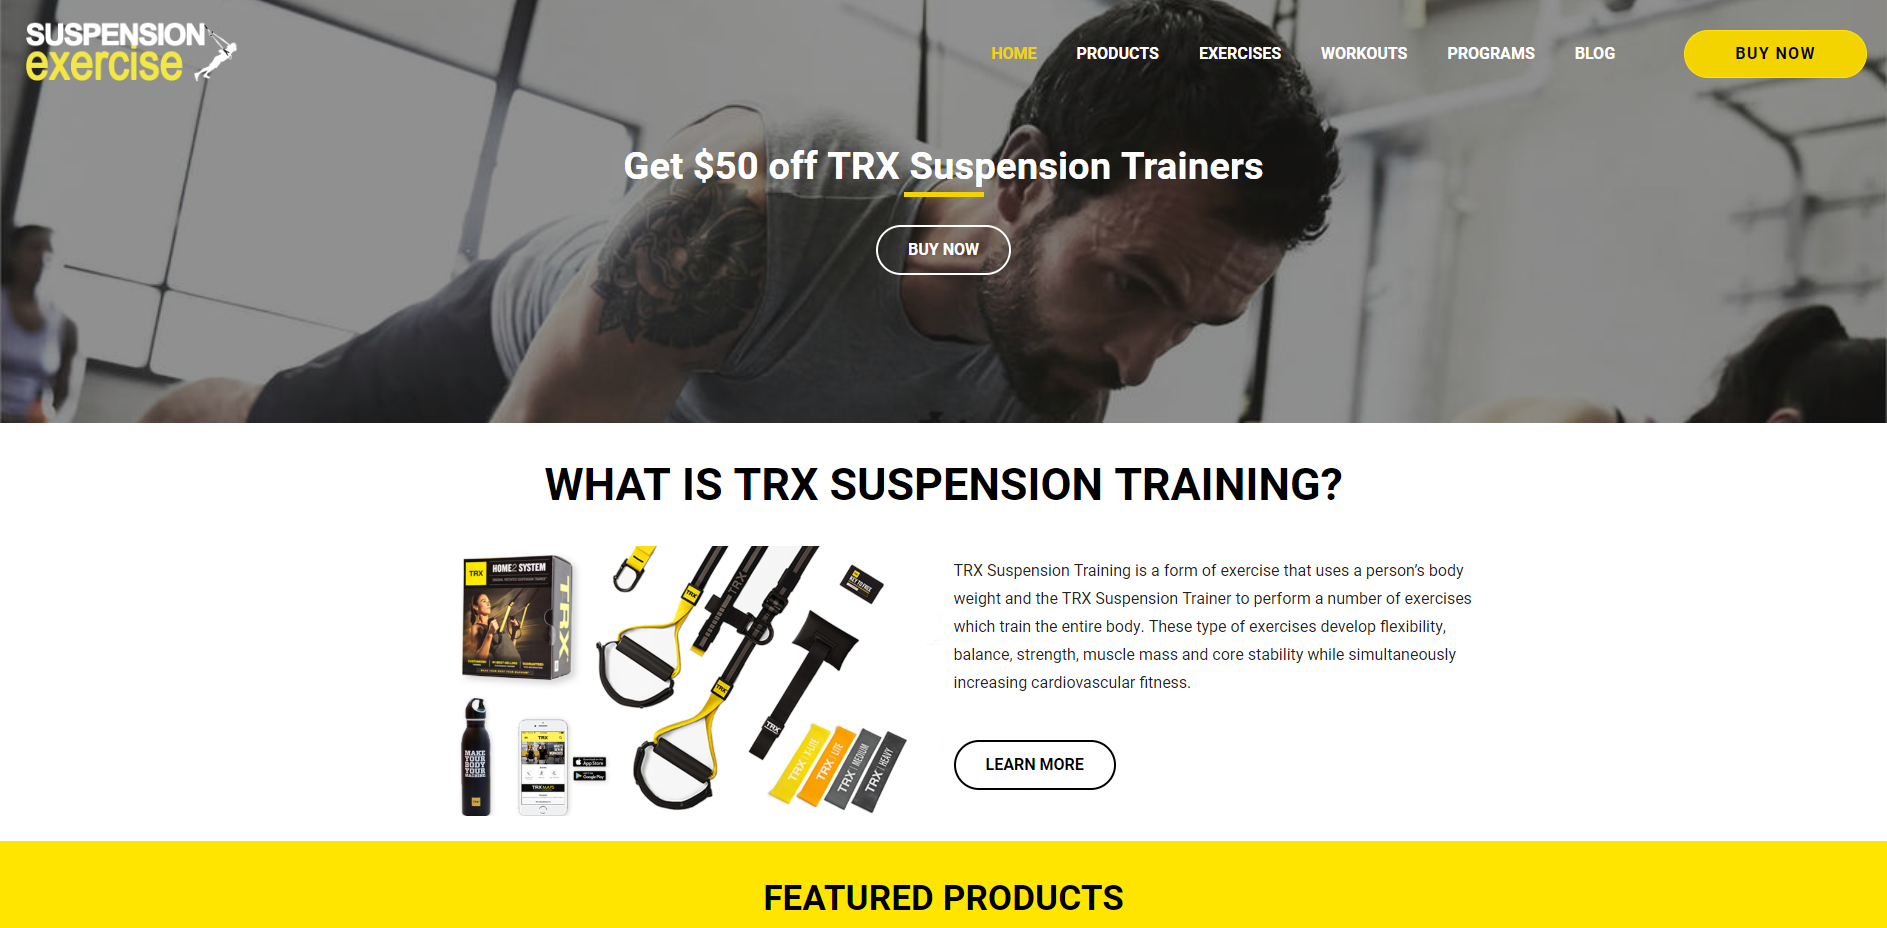 Suspension Exercise Website